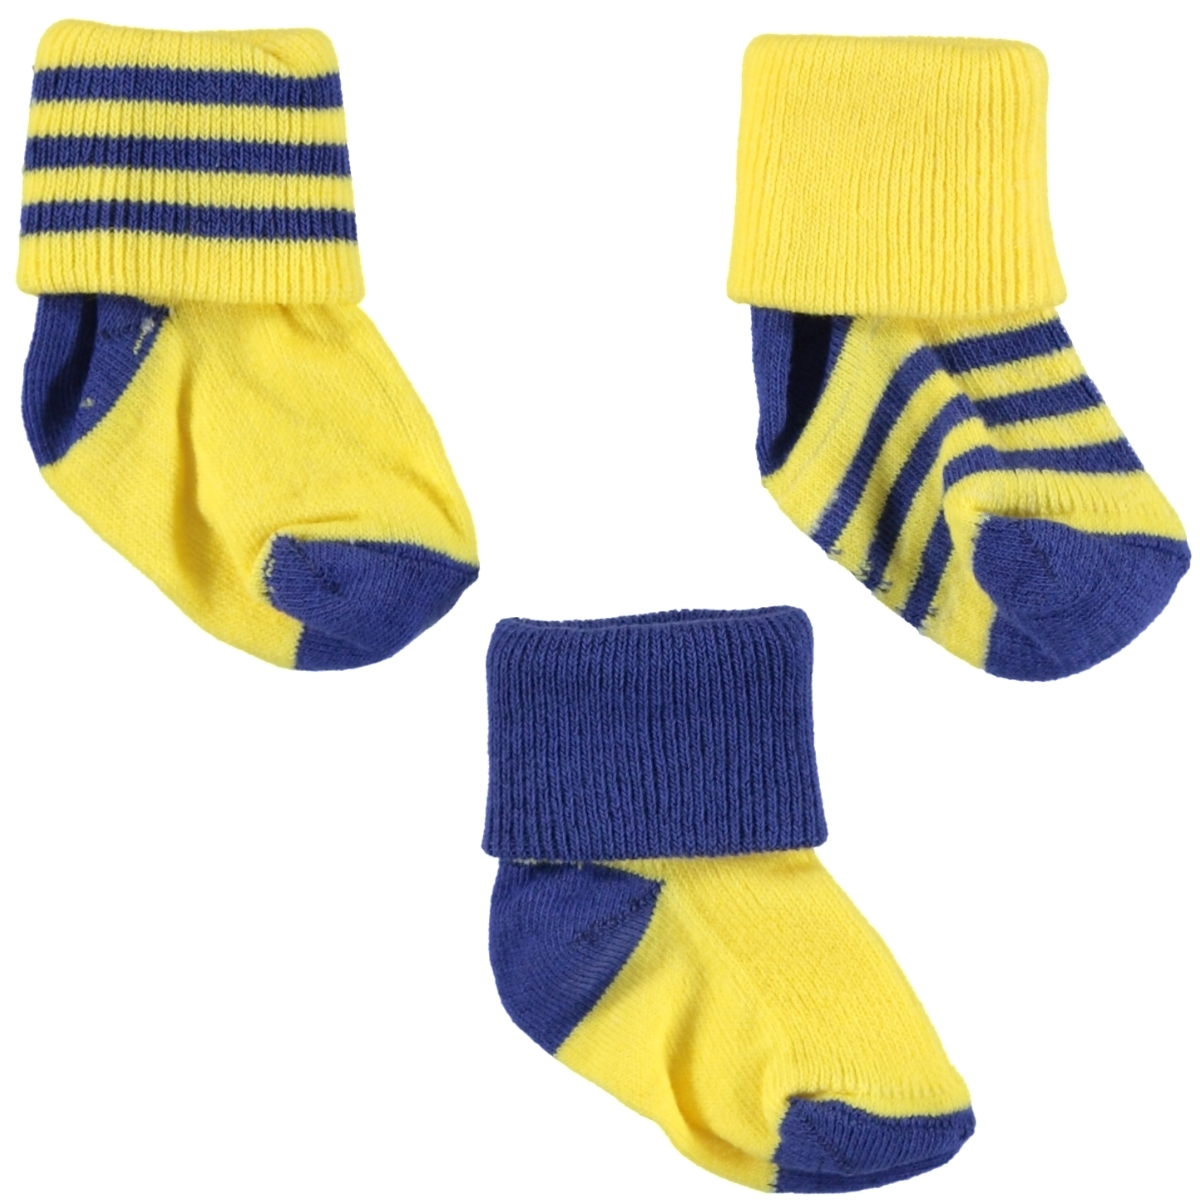 Misket The fans are 3-way Socket Sock Set-0-3 months-yellow-navy blue